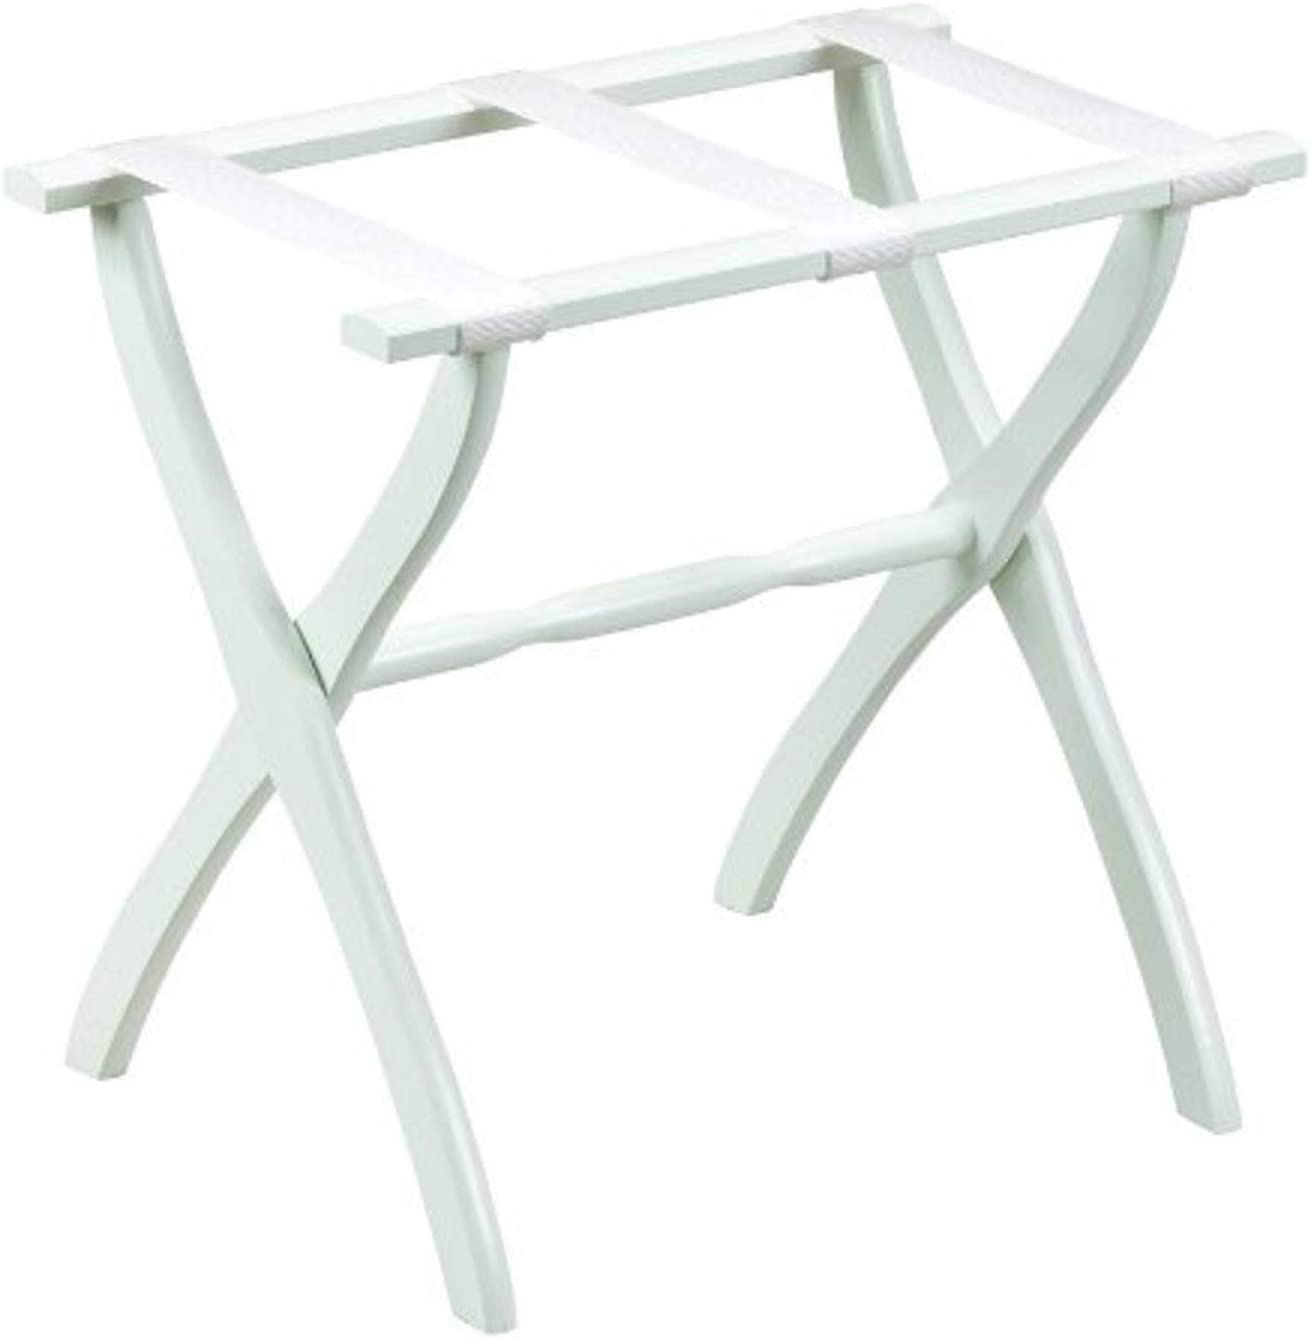 Gate House Oakland Mall Furniture Item White with Direct sale of manufacturer Contoured Leg Rack Luggage